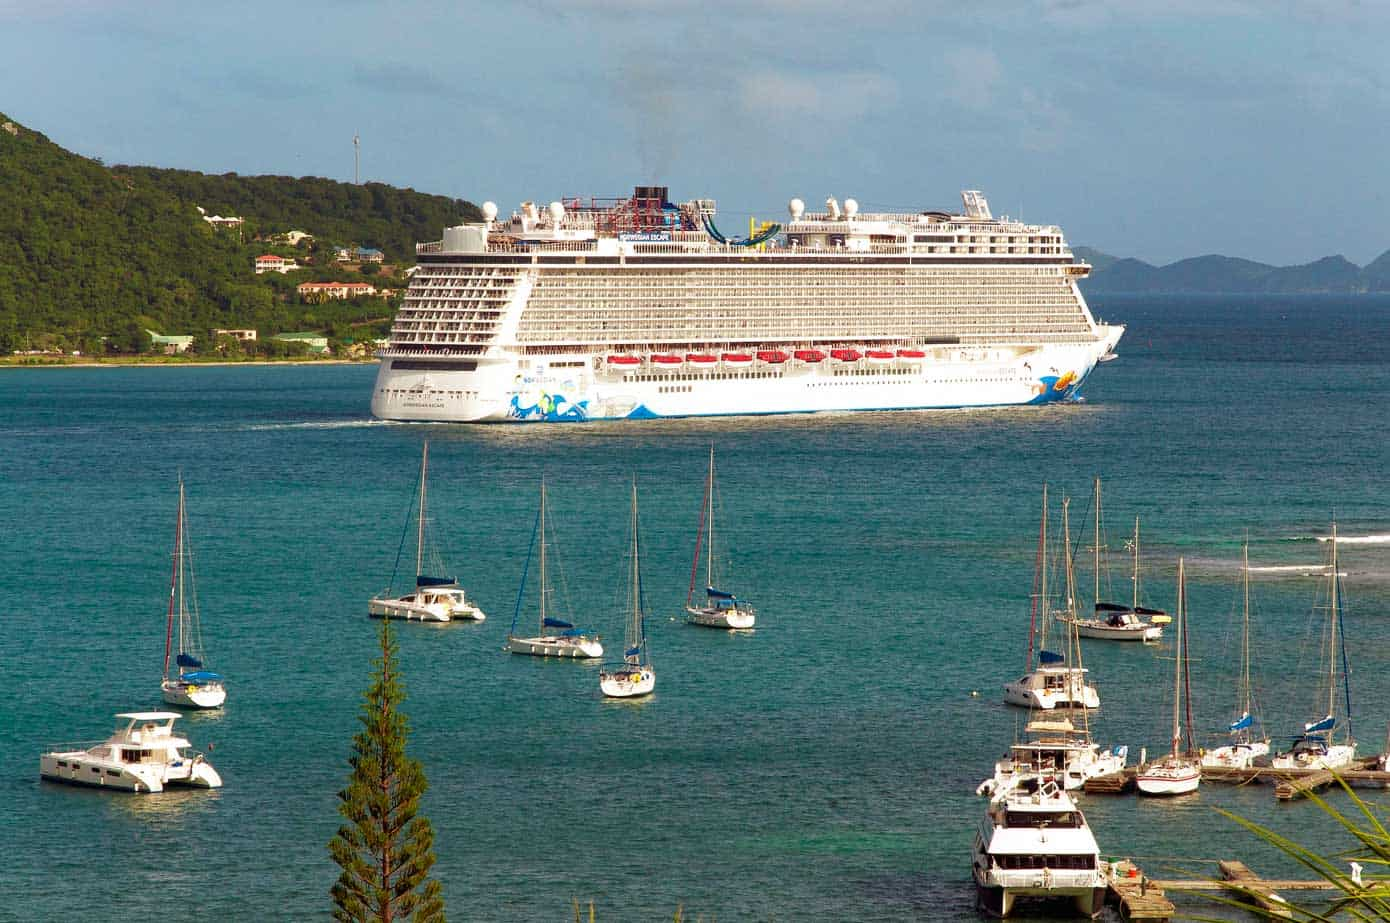 Cruise ship departing the British Virgin Islands.